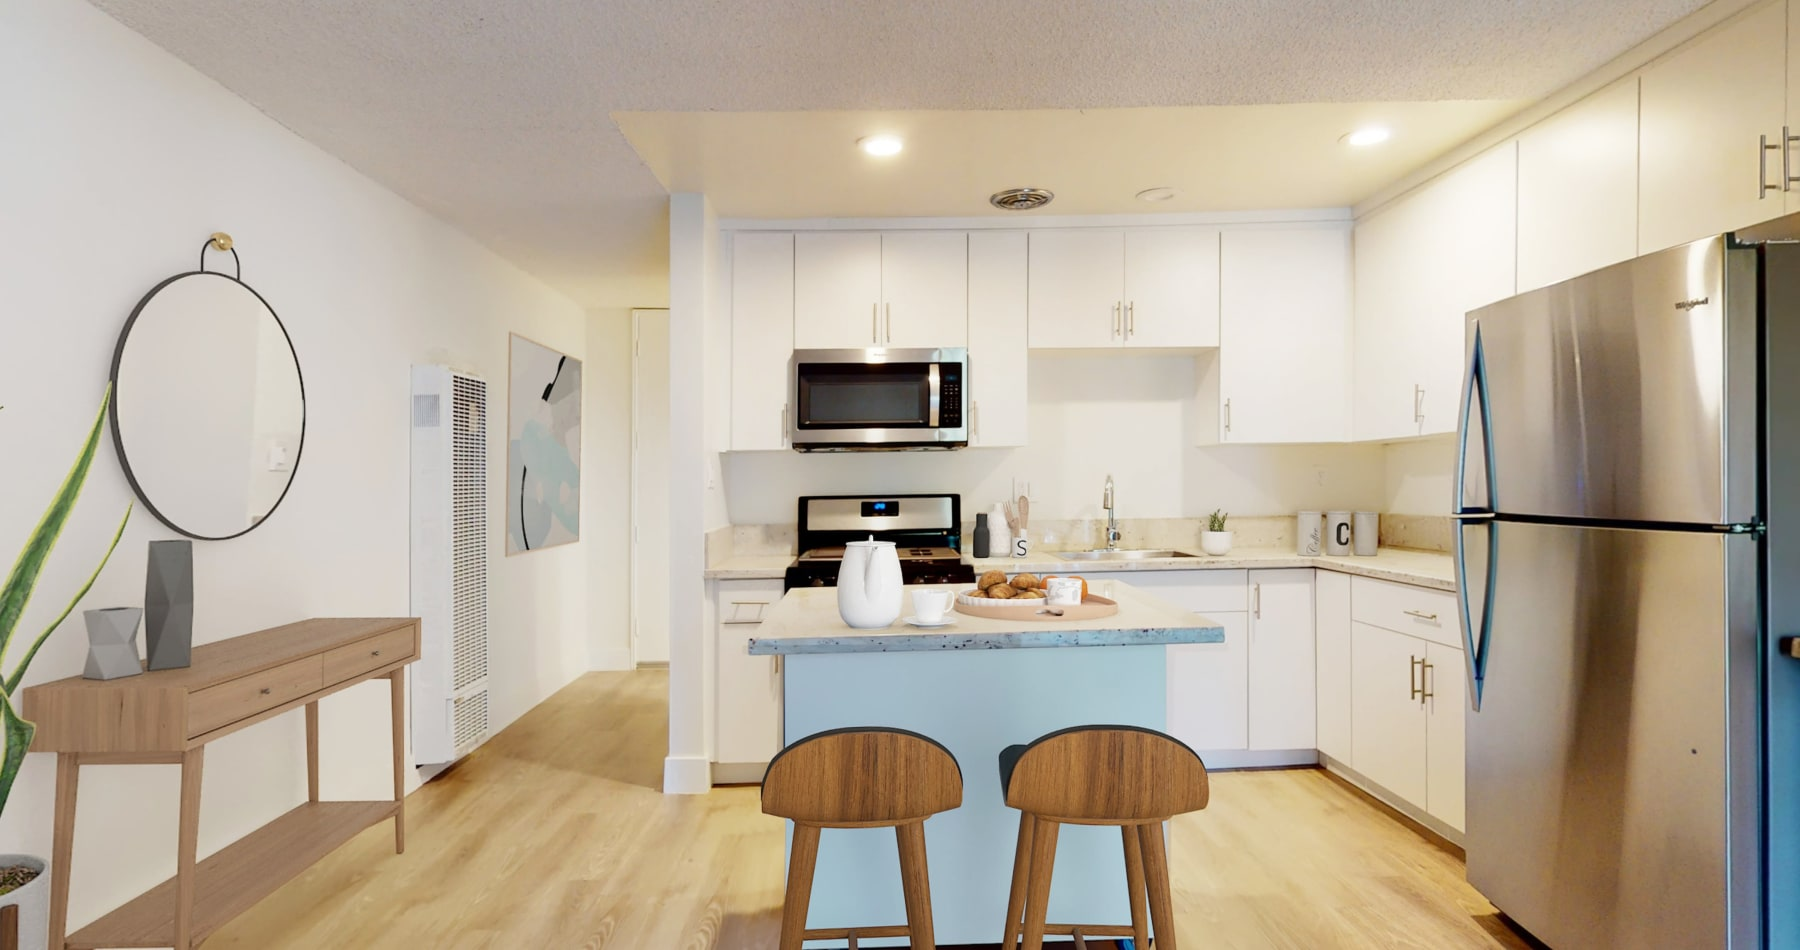 View a virtual tour of our studio apartment at Mediterranean Village in West Hollywood, California